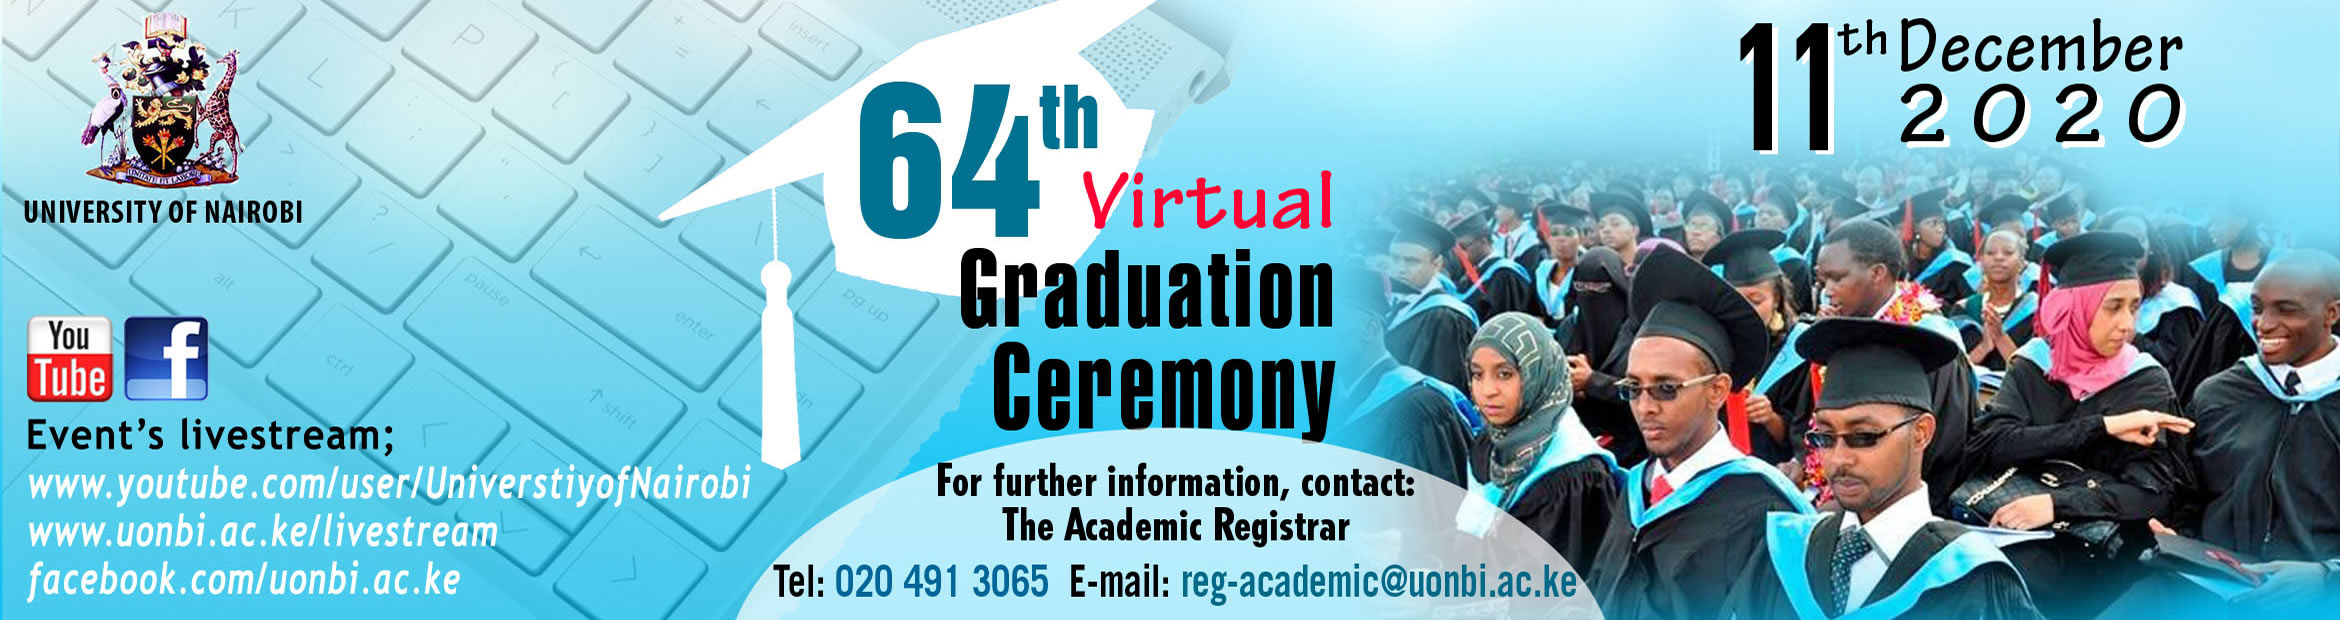 64th Graduation Ceremony